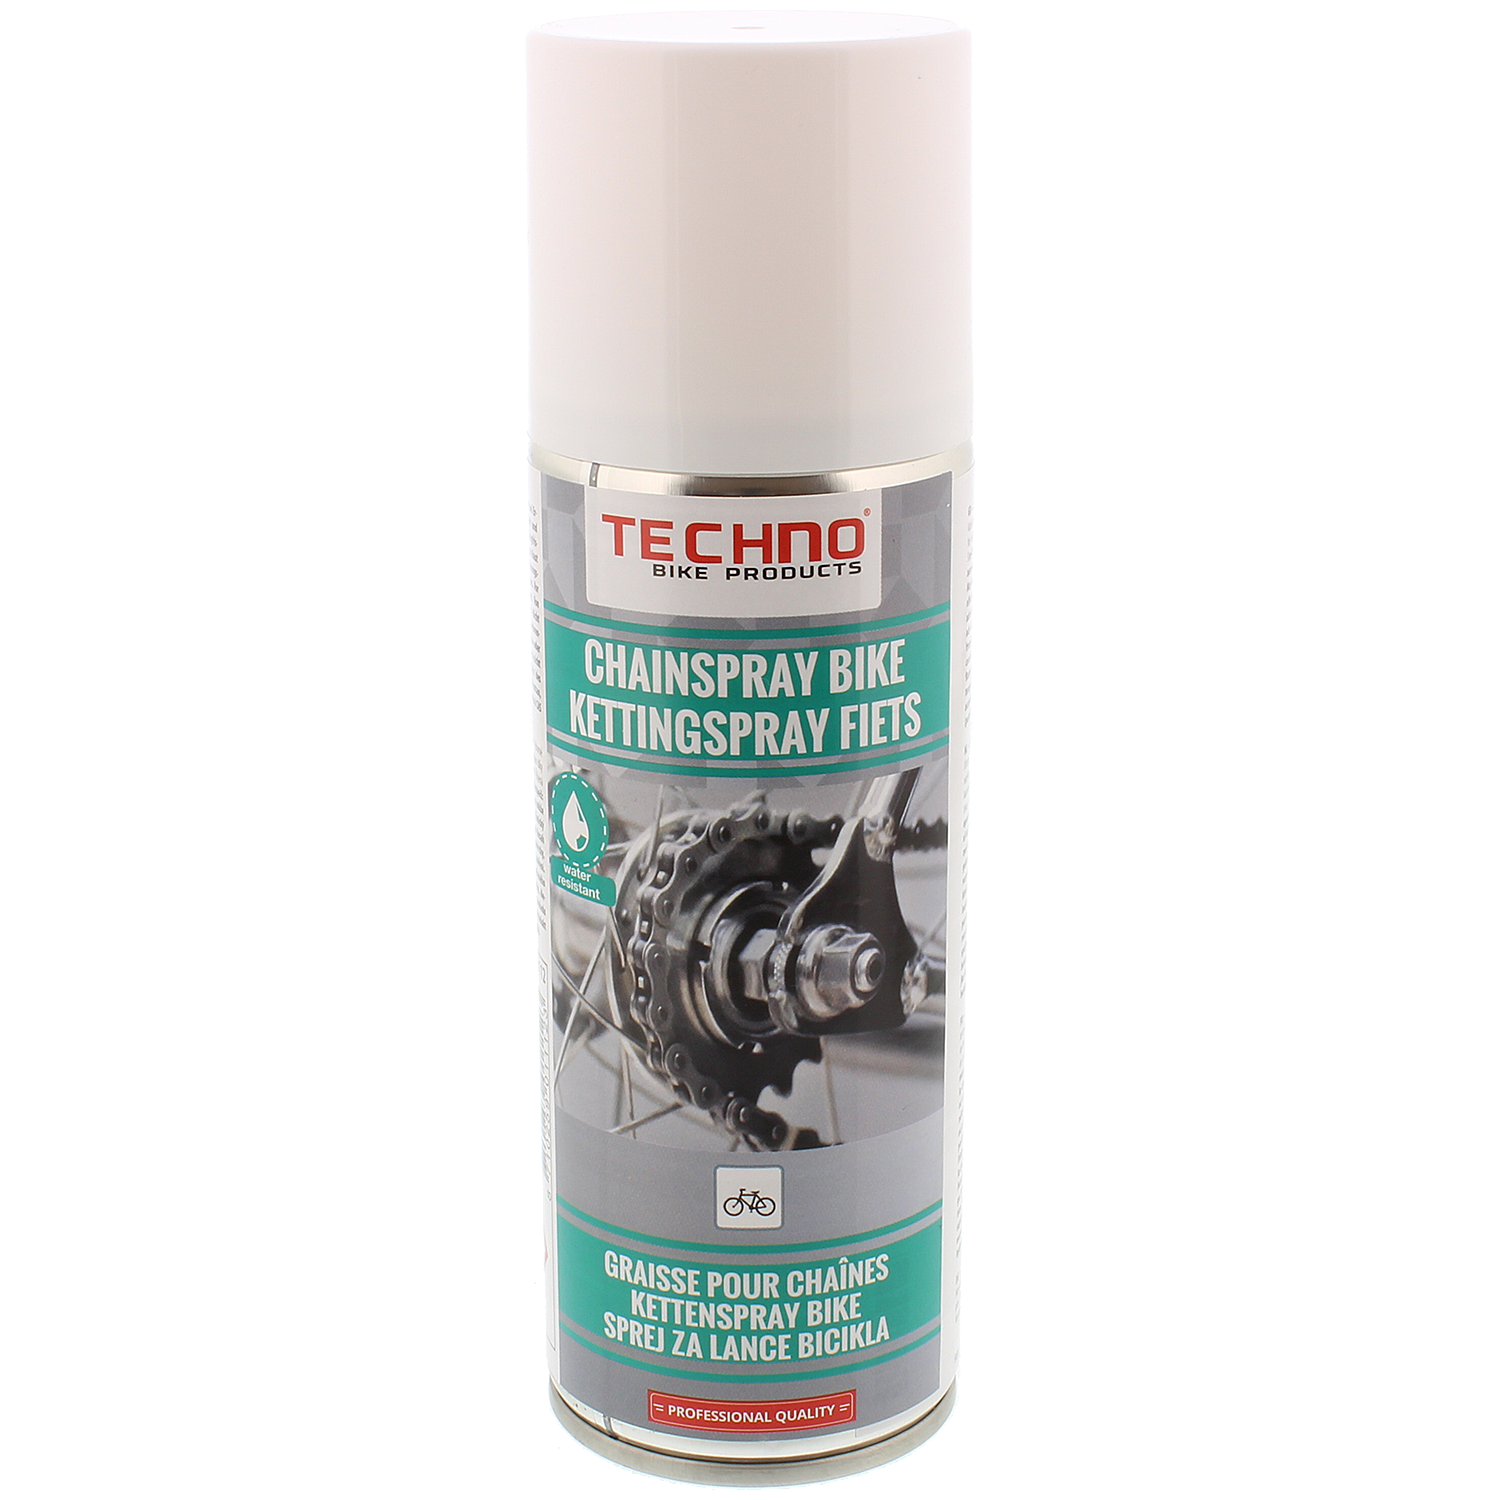 Techno Kettingspray Bike Products 200 Ml Actioncom